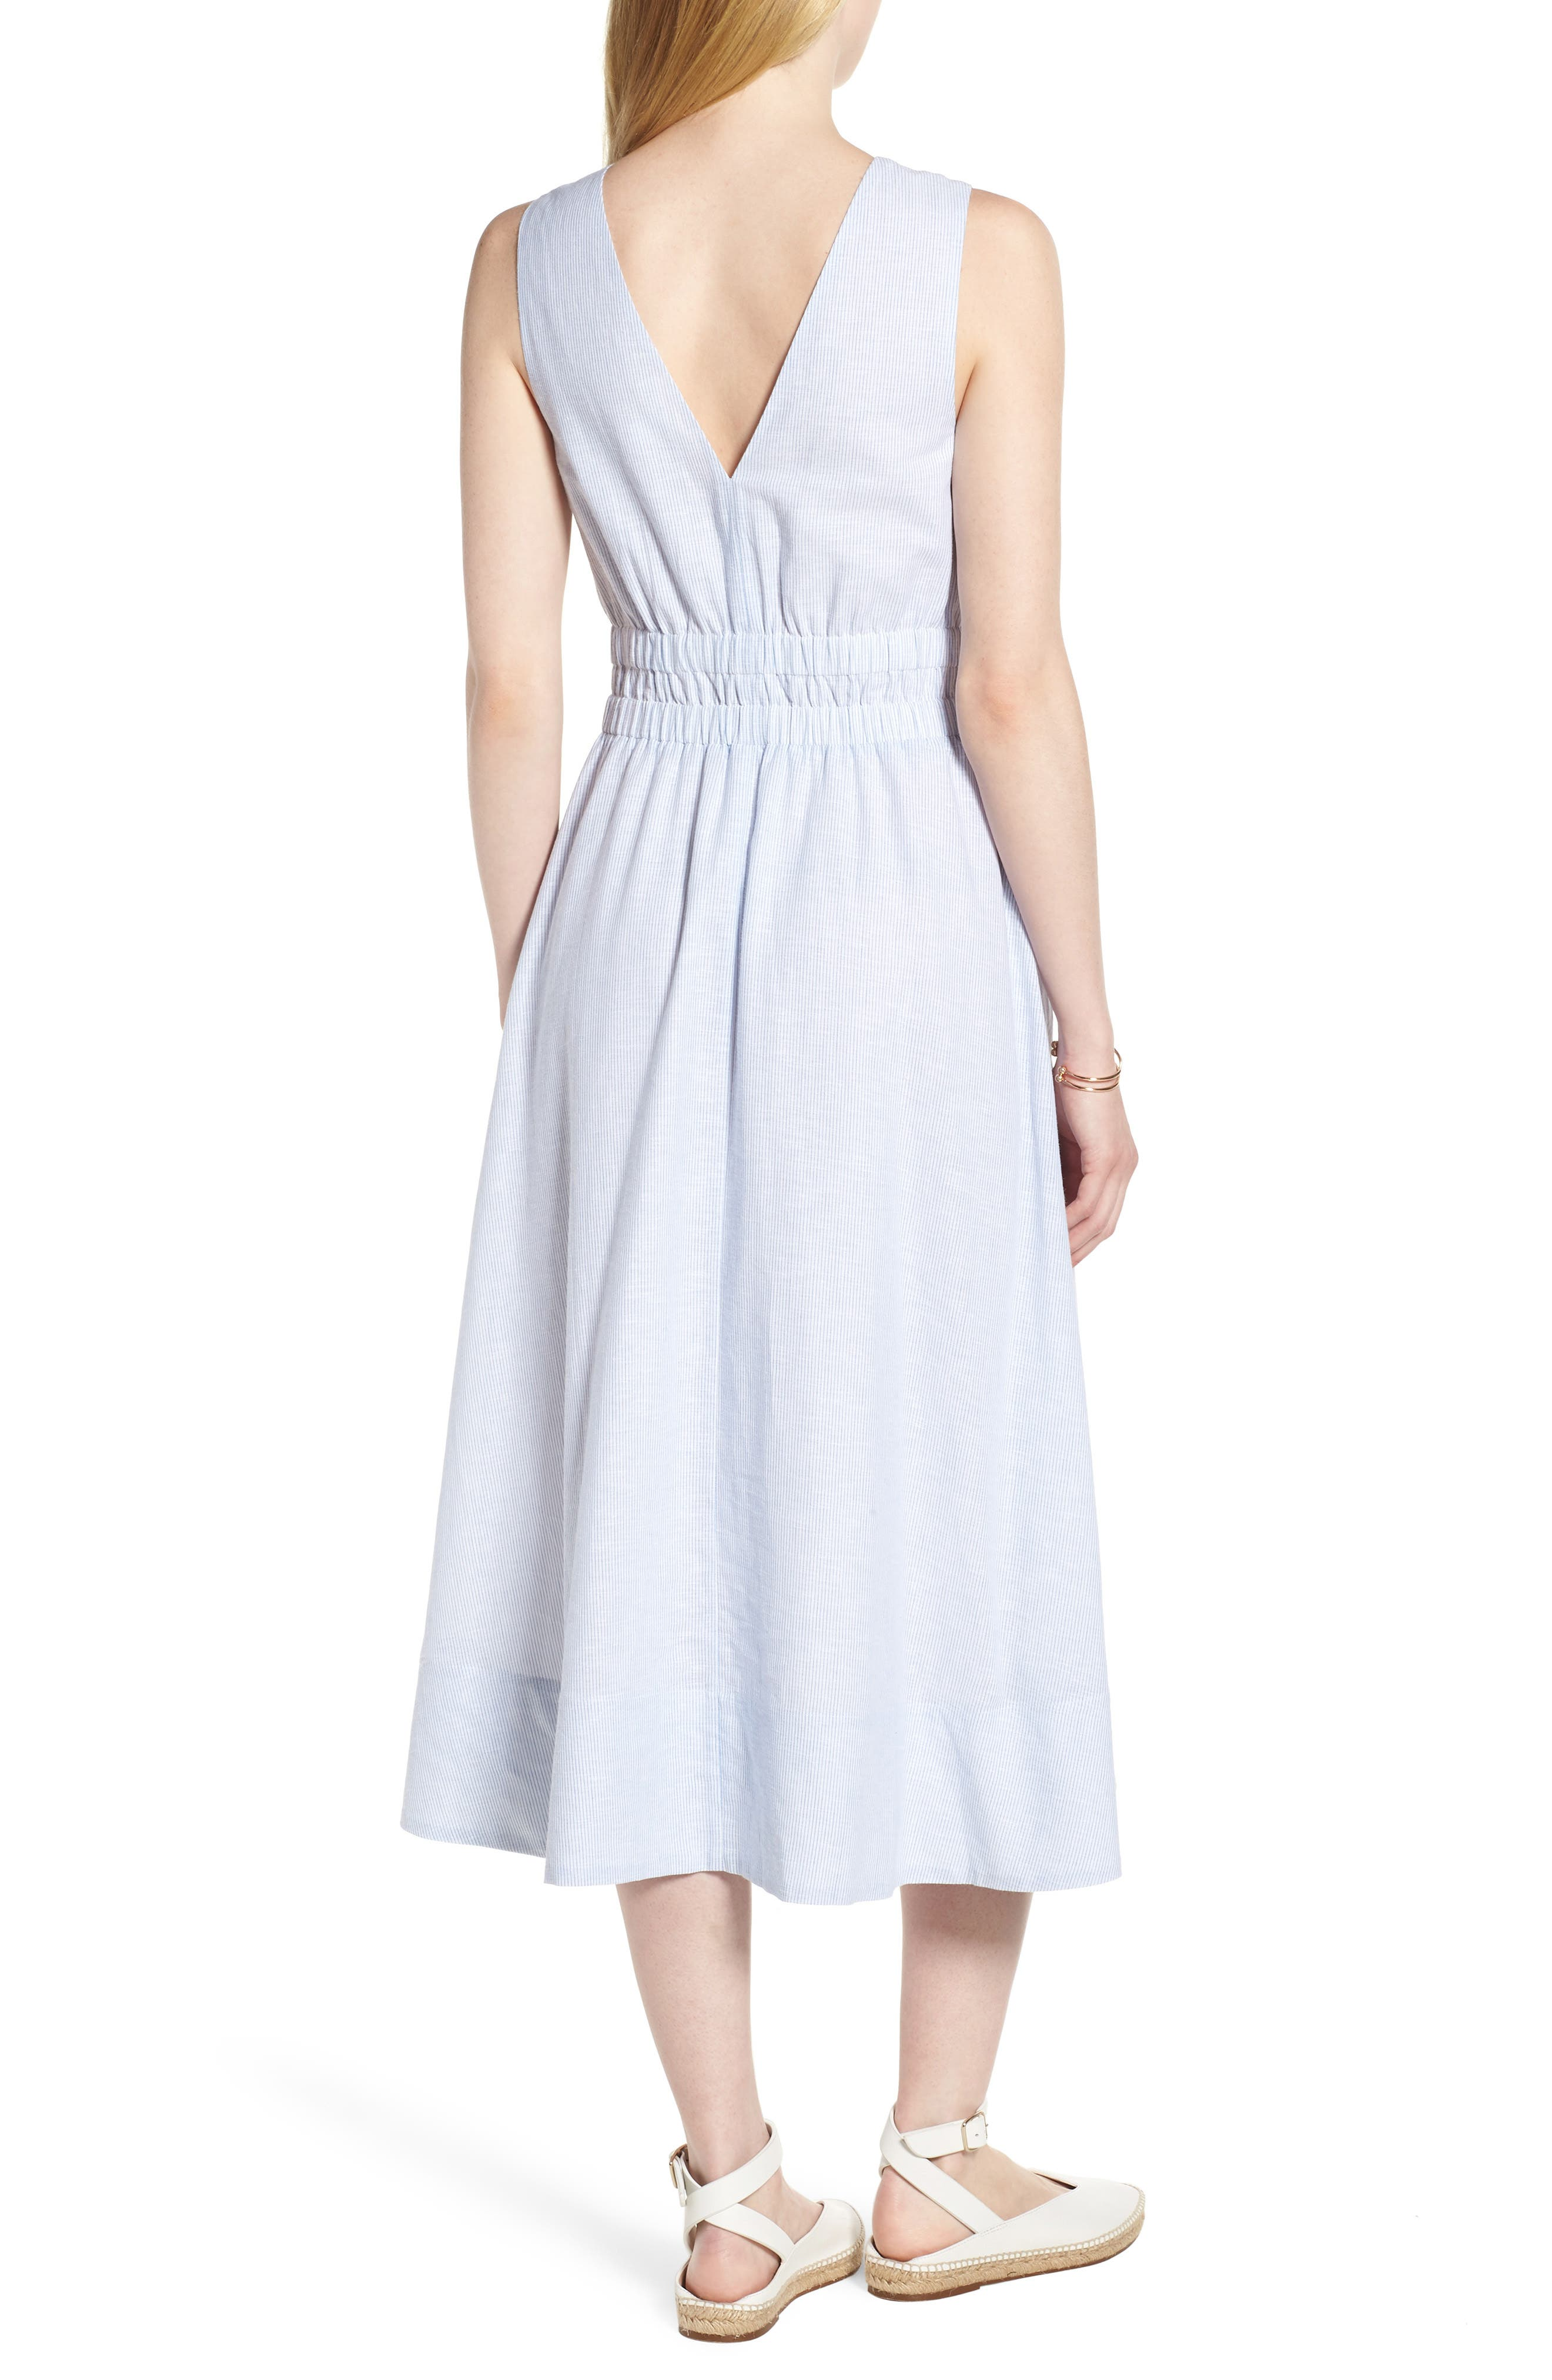 Smocked Waist Pinstripe Midi Dress,                             Alternate thumbnail 2, color,                             White- Blue Mini Stripe